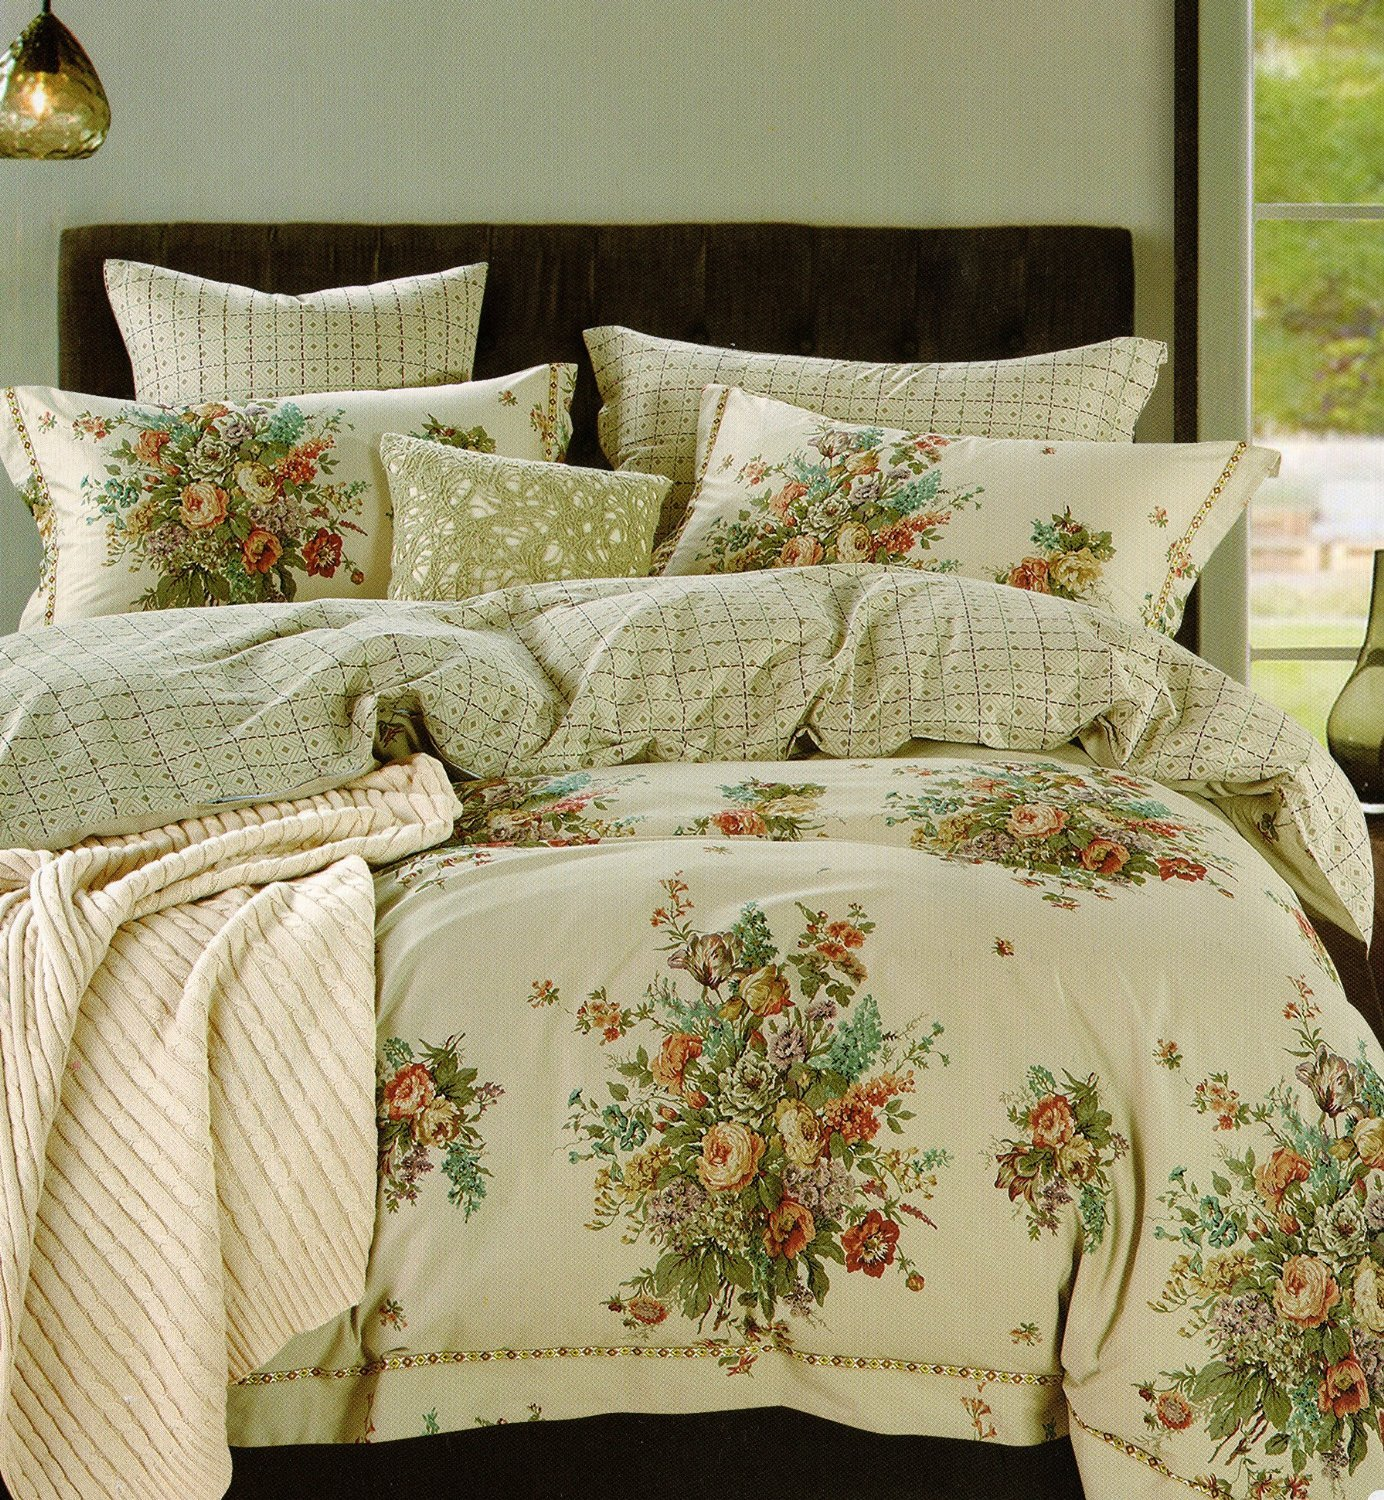 Cottage Country Style 3 Piece Duvet Cover Set Multicolored Roses Peonies Bouquet